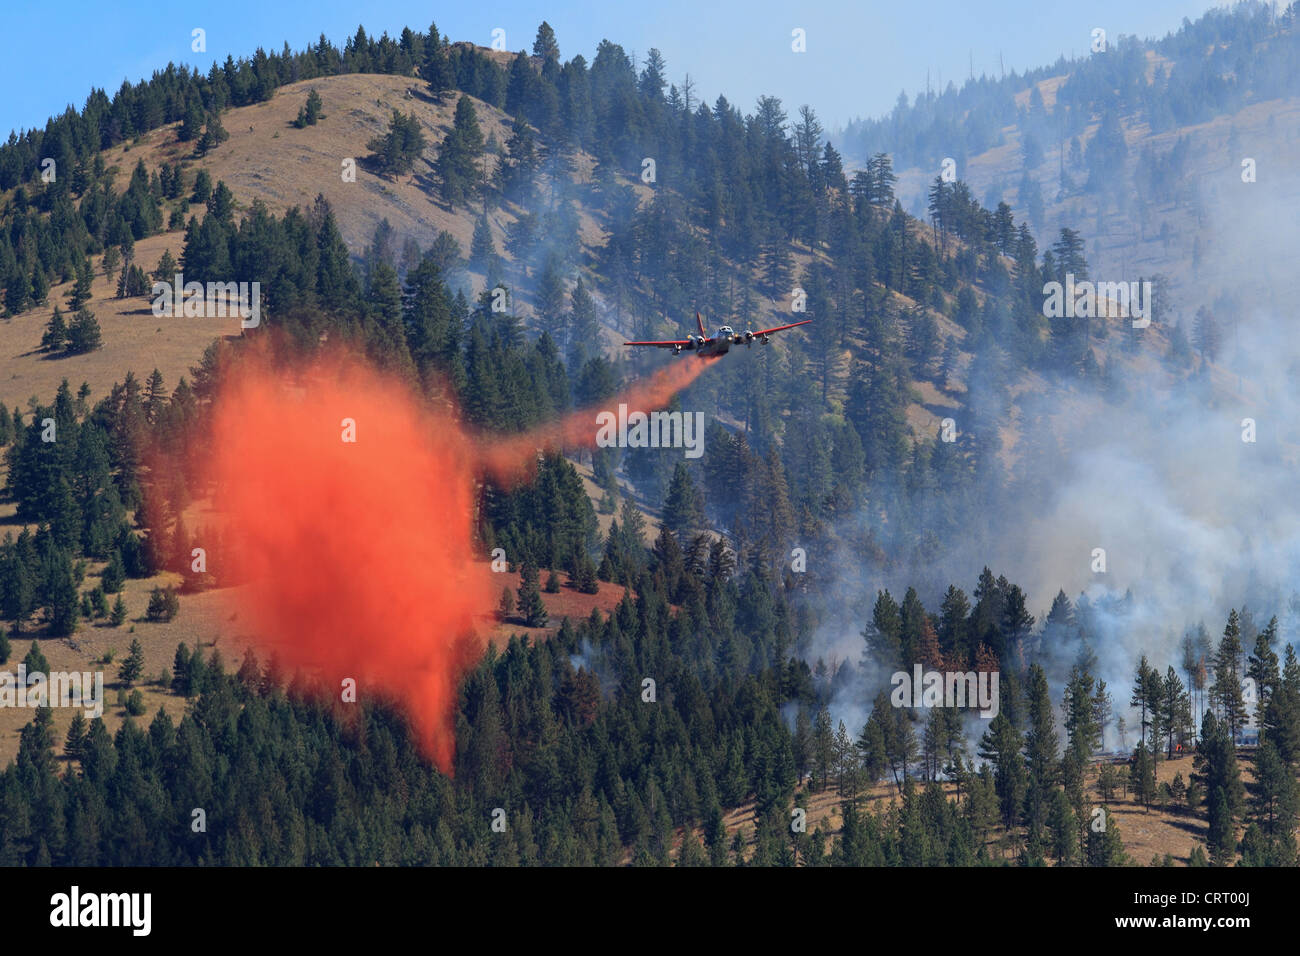 A U.S. Forest Service Airplane drops chemical suppressant on a forest fire near Bonner, Montana, USA. - Stock Image